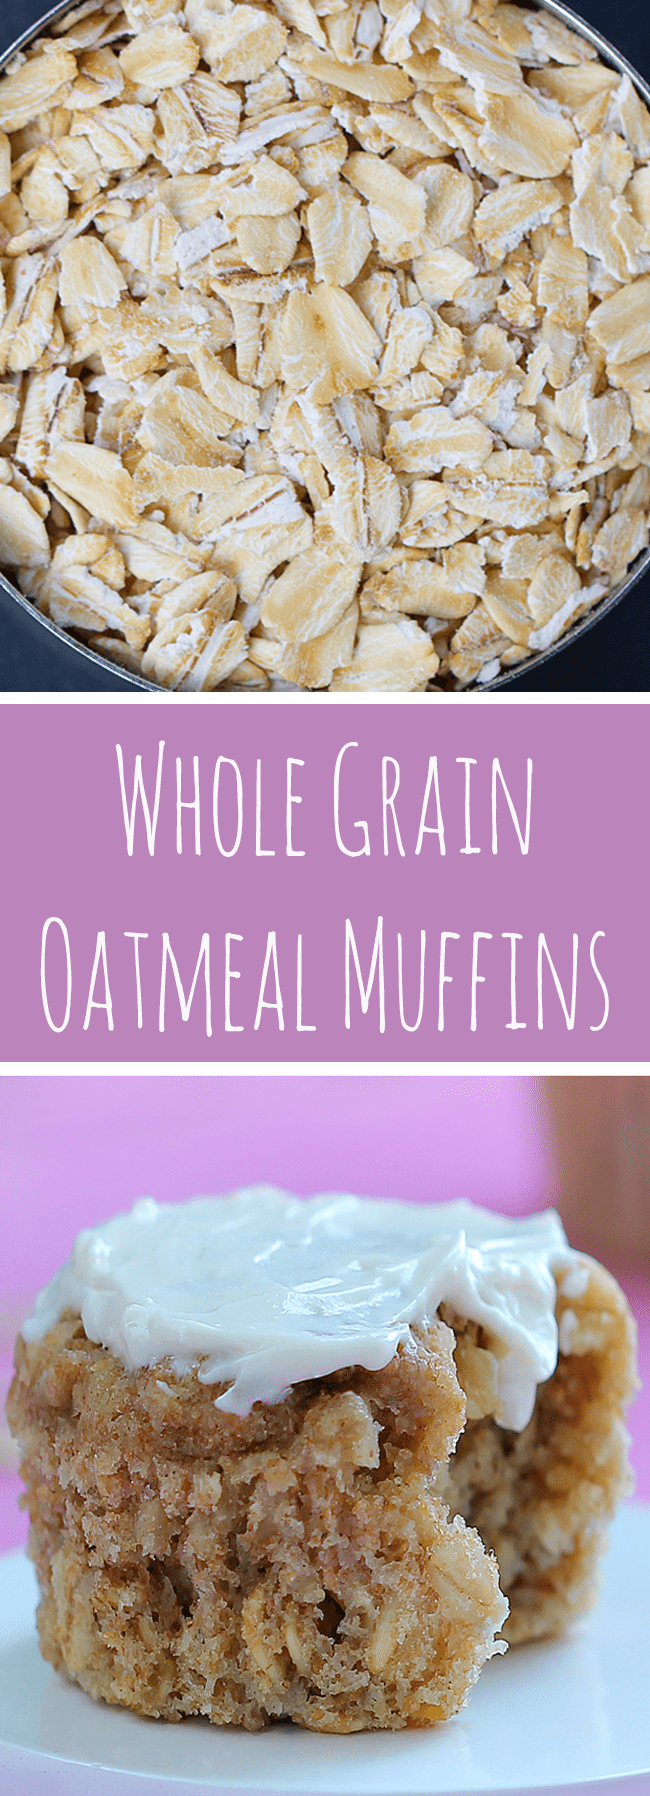 Oatmeal Muffins - Ingredients: 1 1/2 cups rolled oats, 1 tsp baking powder, 1/2 tsp cinnamon, 2 tsp vanilla, 1/4 cup... Full recipe: http://chocolatecoveredkatie.com/2014/01/06/oatmeal-muffins/ @choccoveredkt